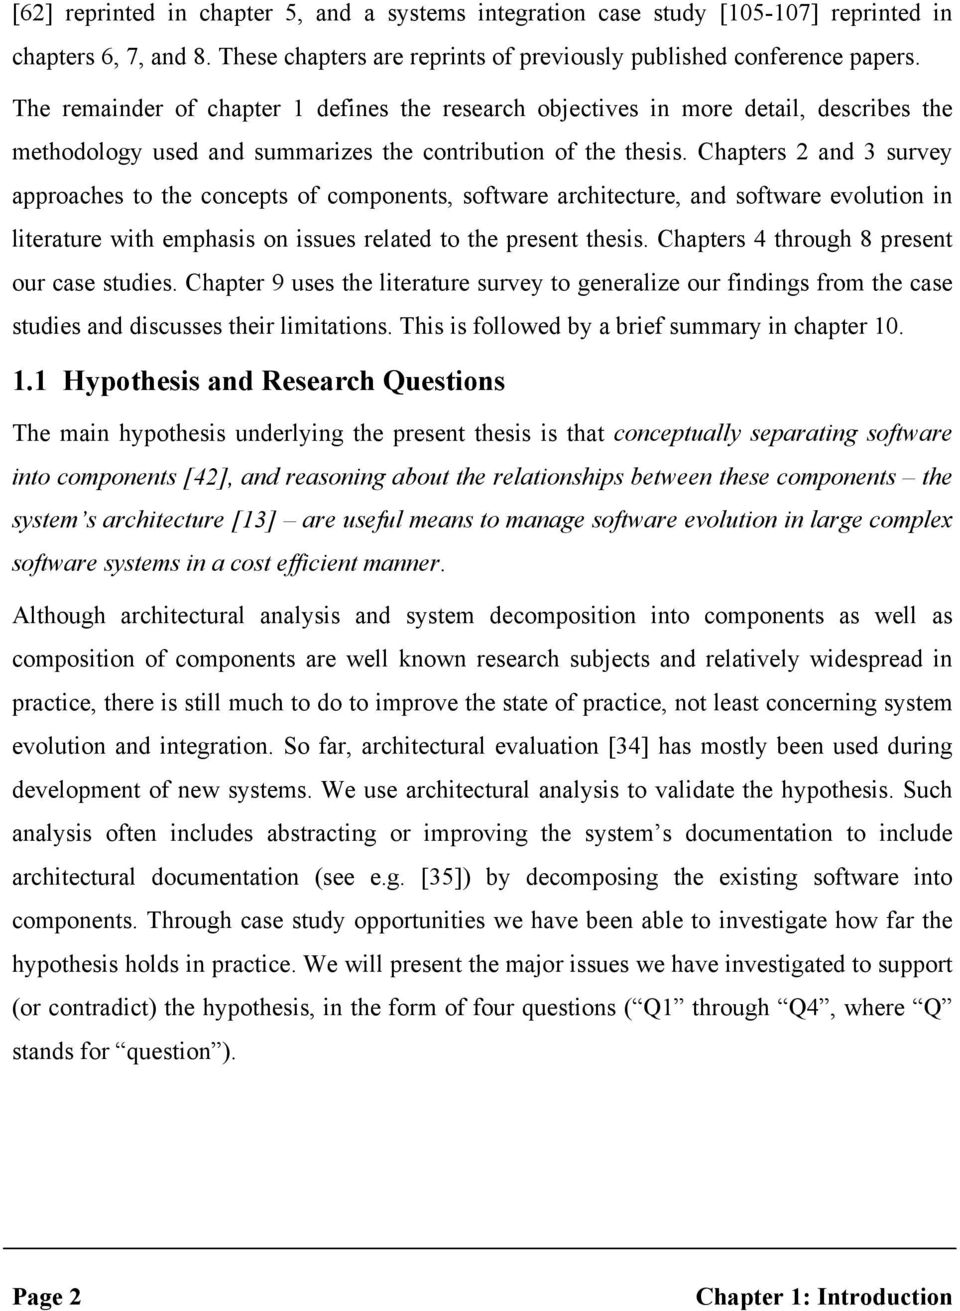 Chapters 2 and 3 survey approaches to the concepts of components, software architecture, and software evolution in literature with emphasis on issues related to the present thesis.